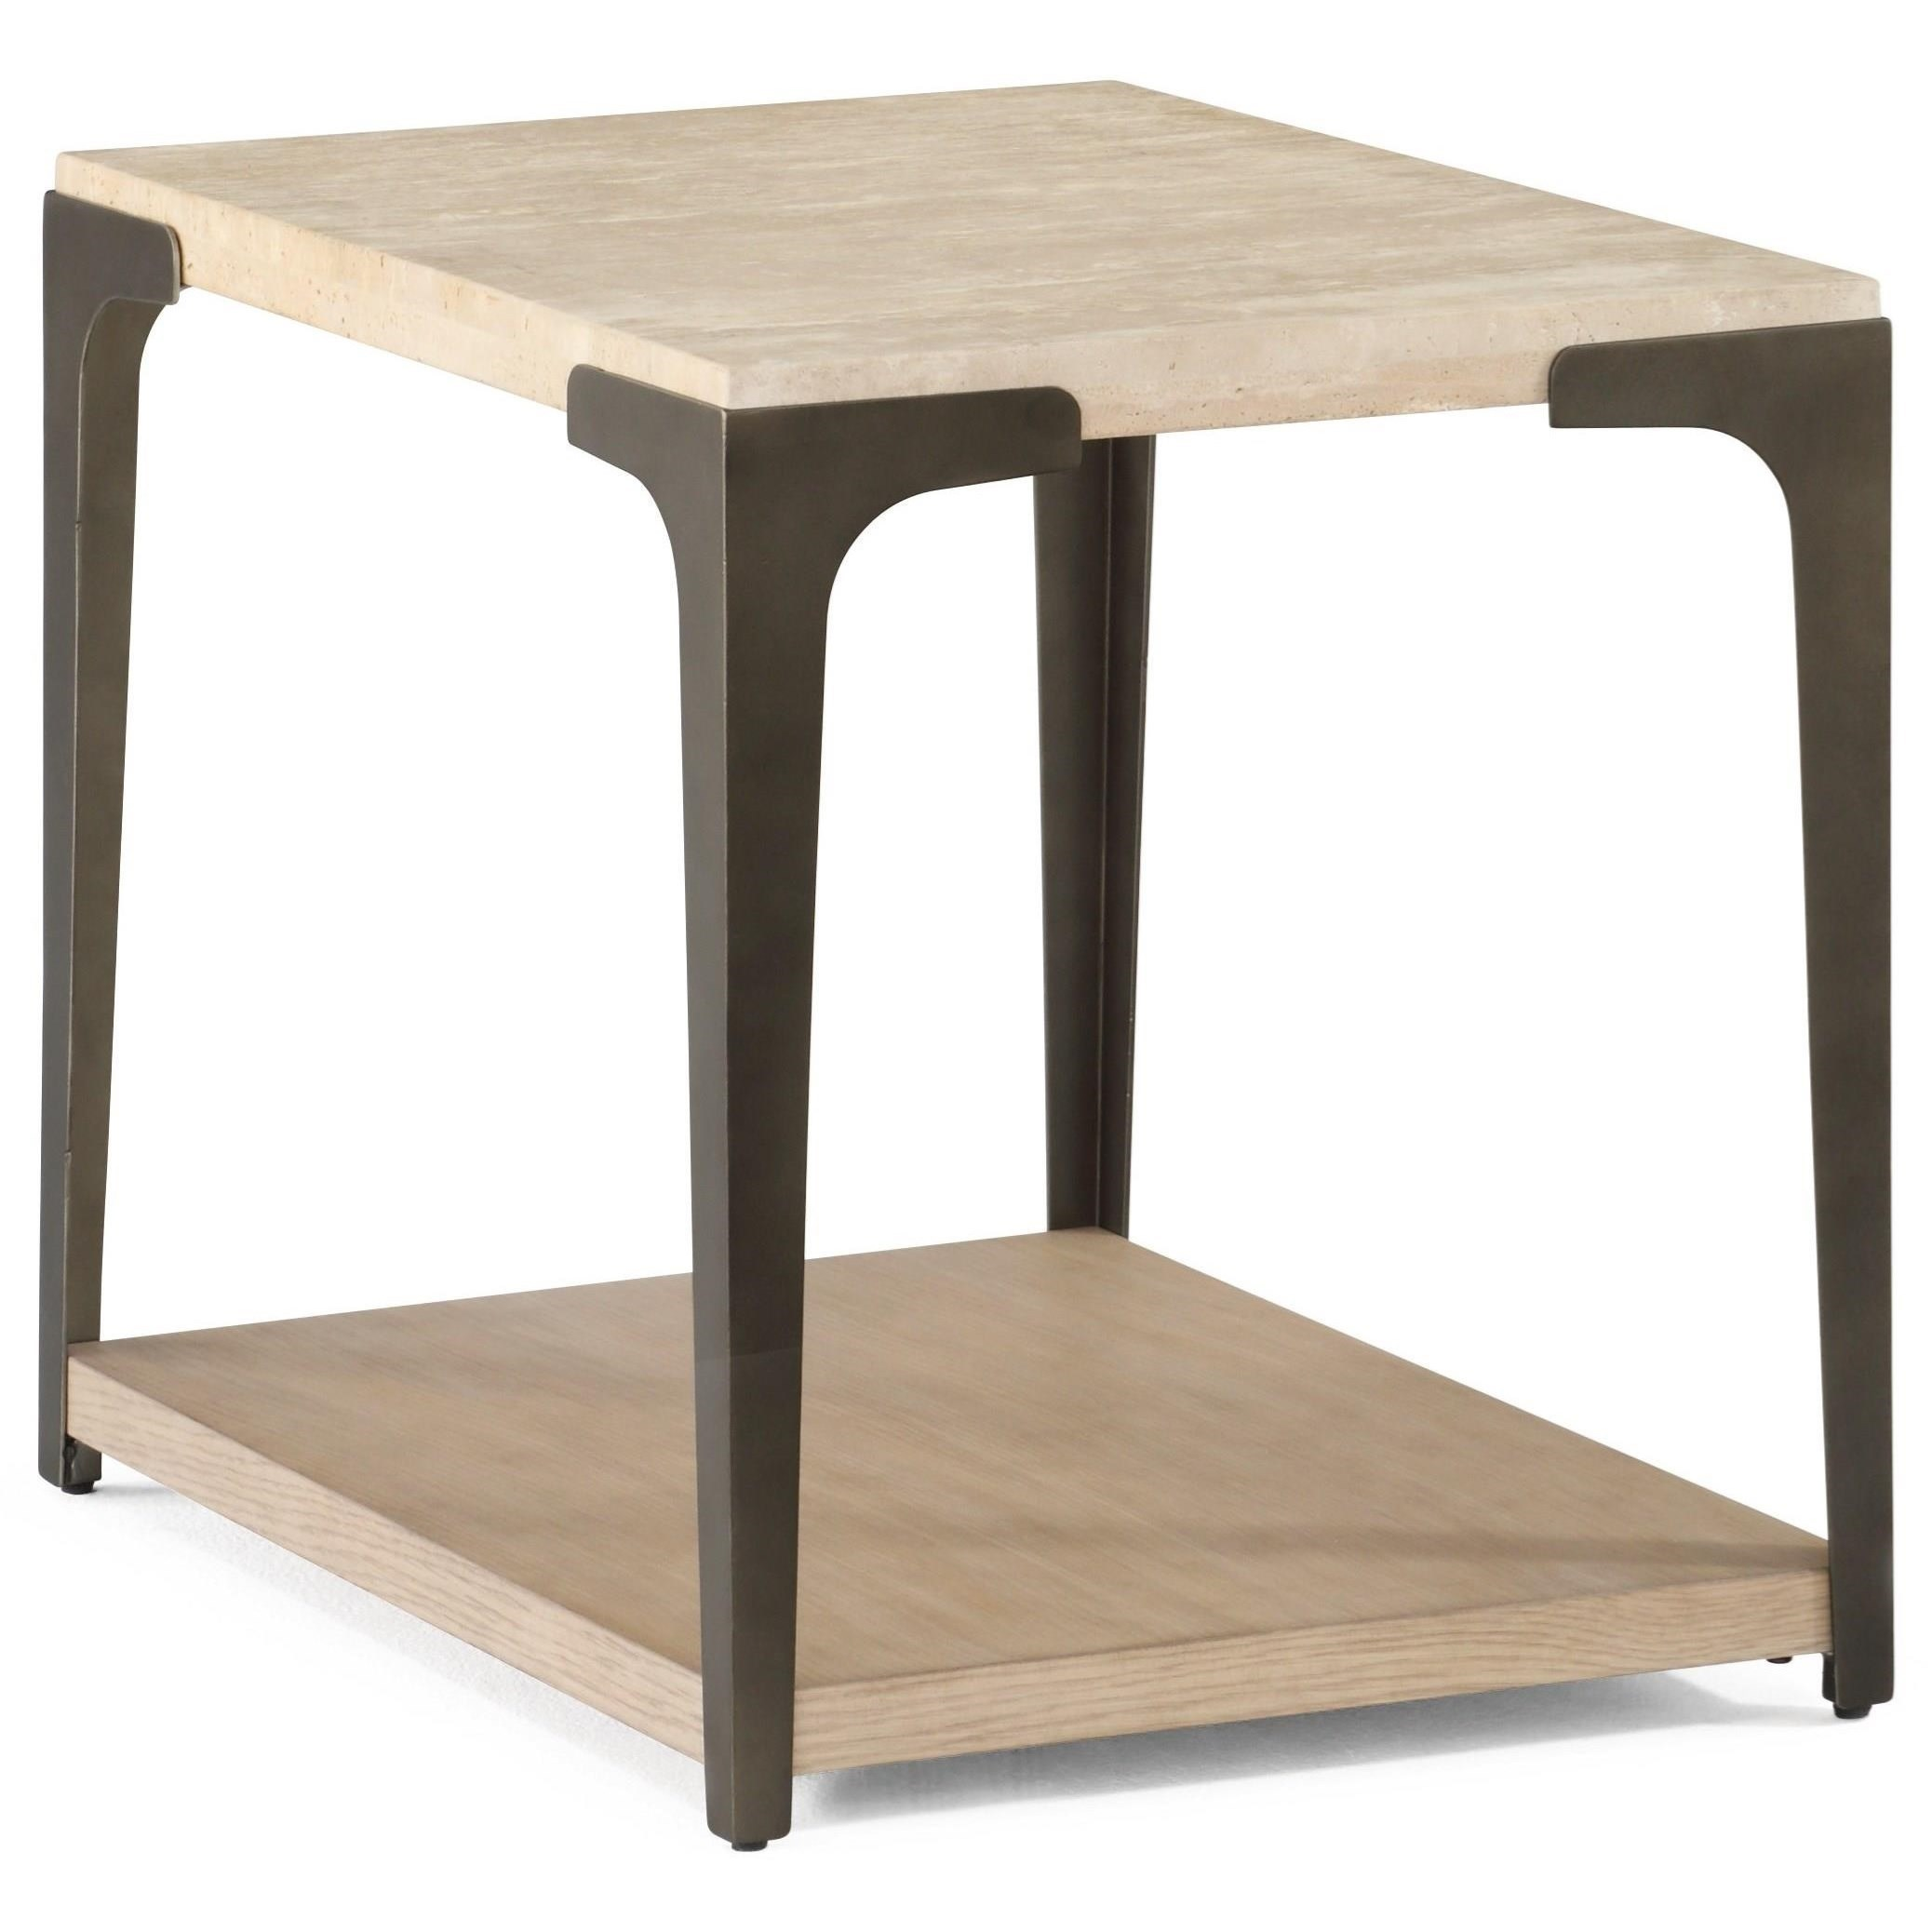 Contemporary End Table with Stone Top and Open Bottom Shelf